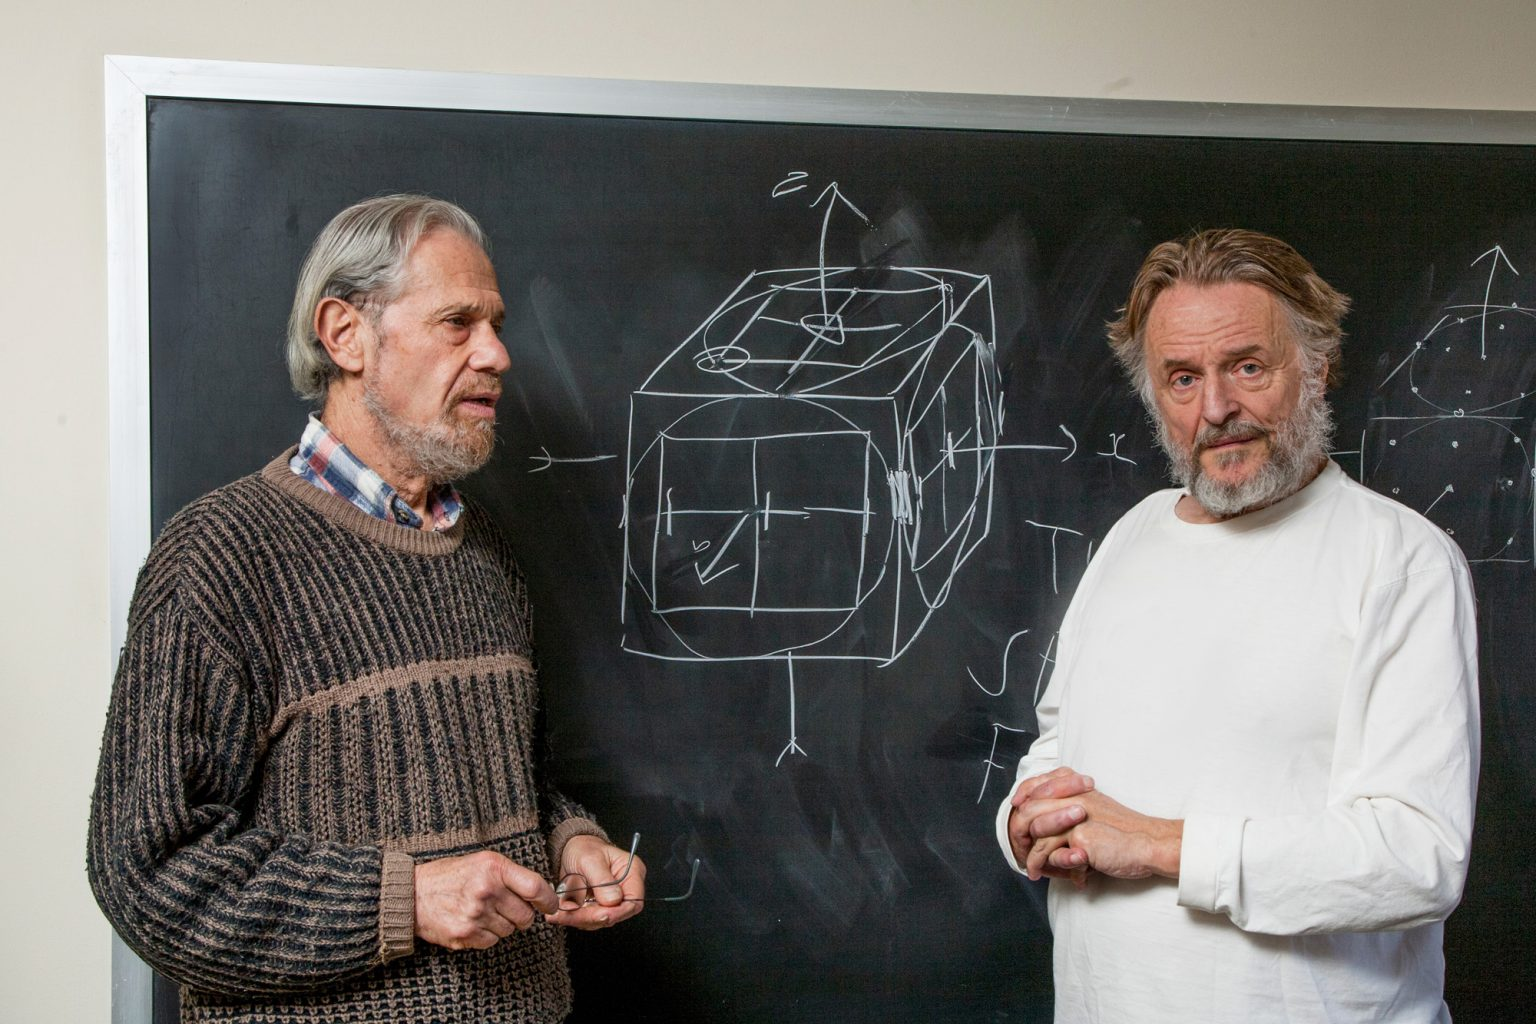 John Horton Conway: The World's Most Charismatic Mathematician | Abakcus